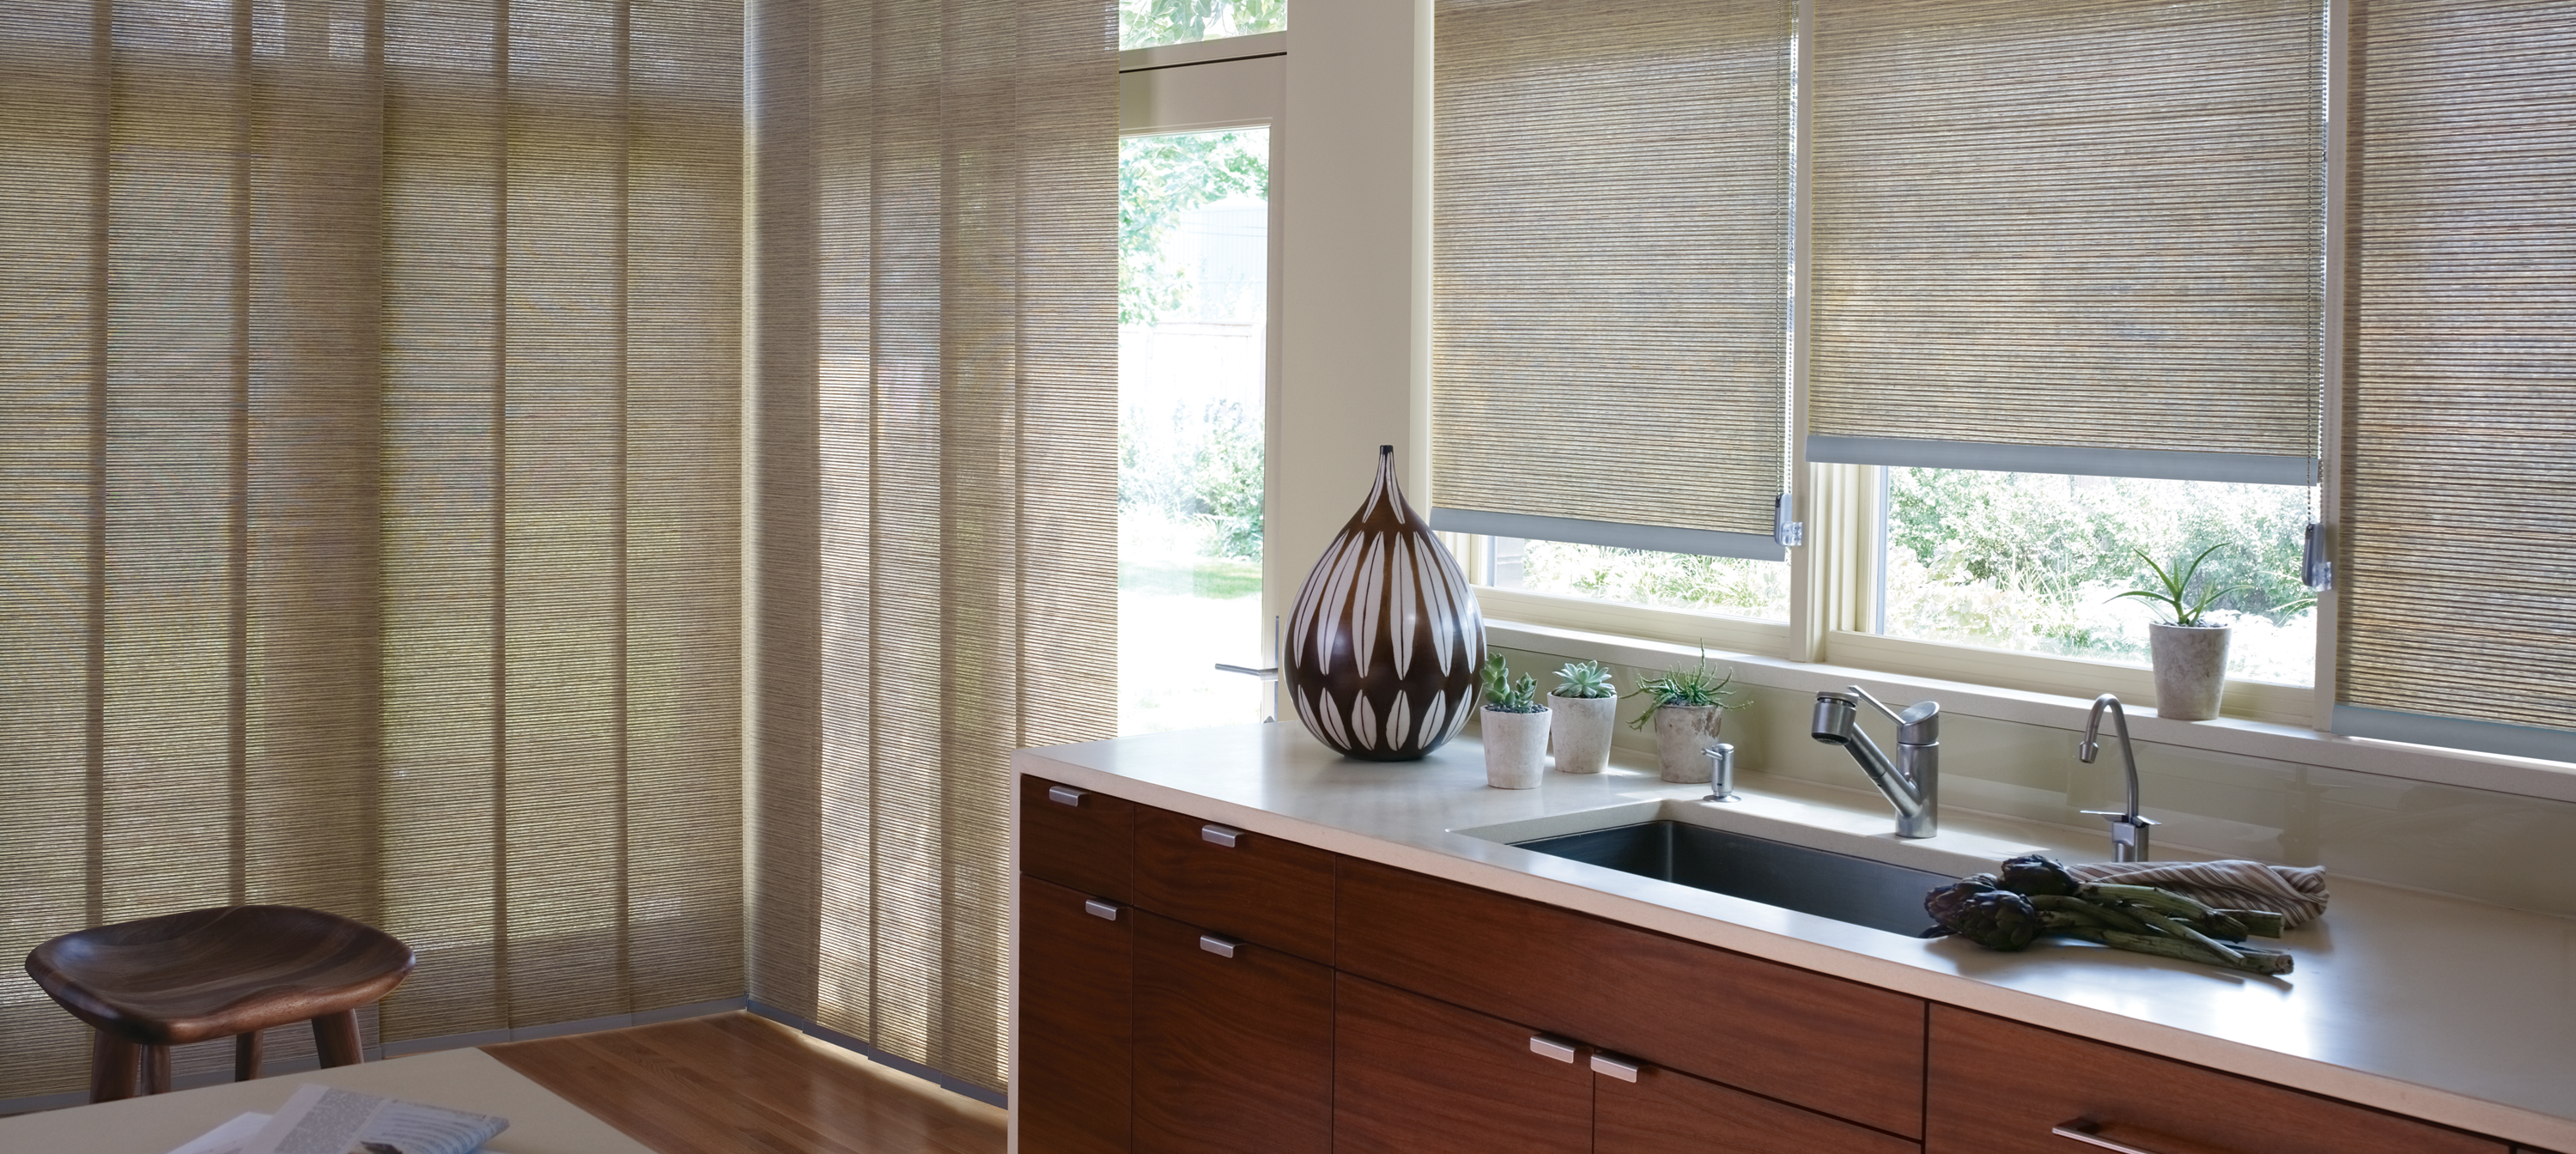 select toronto and london sunrise blinds roomset g shades drapes shutters windsor